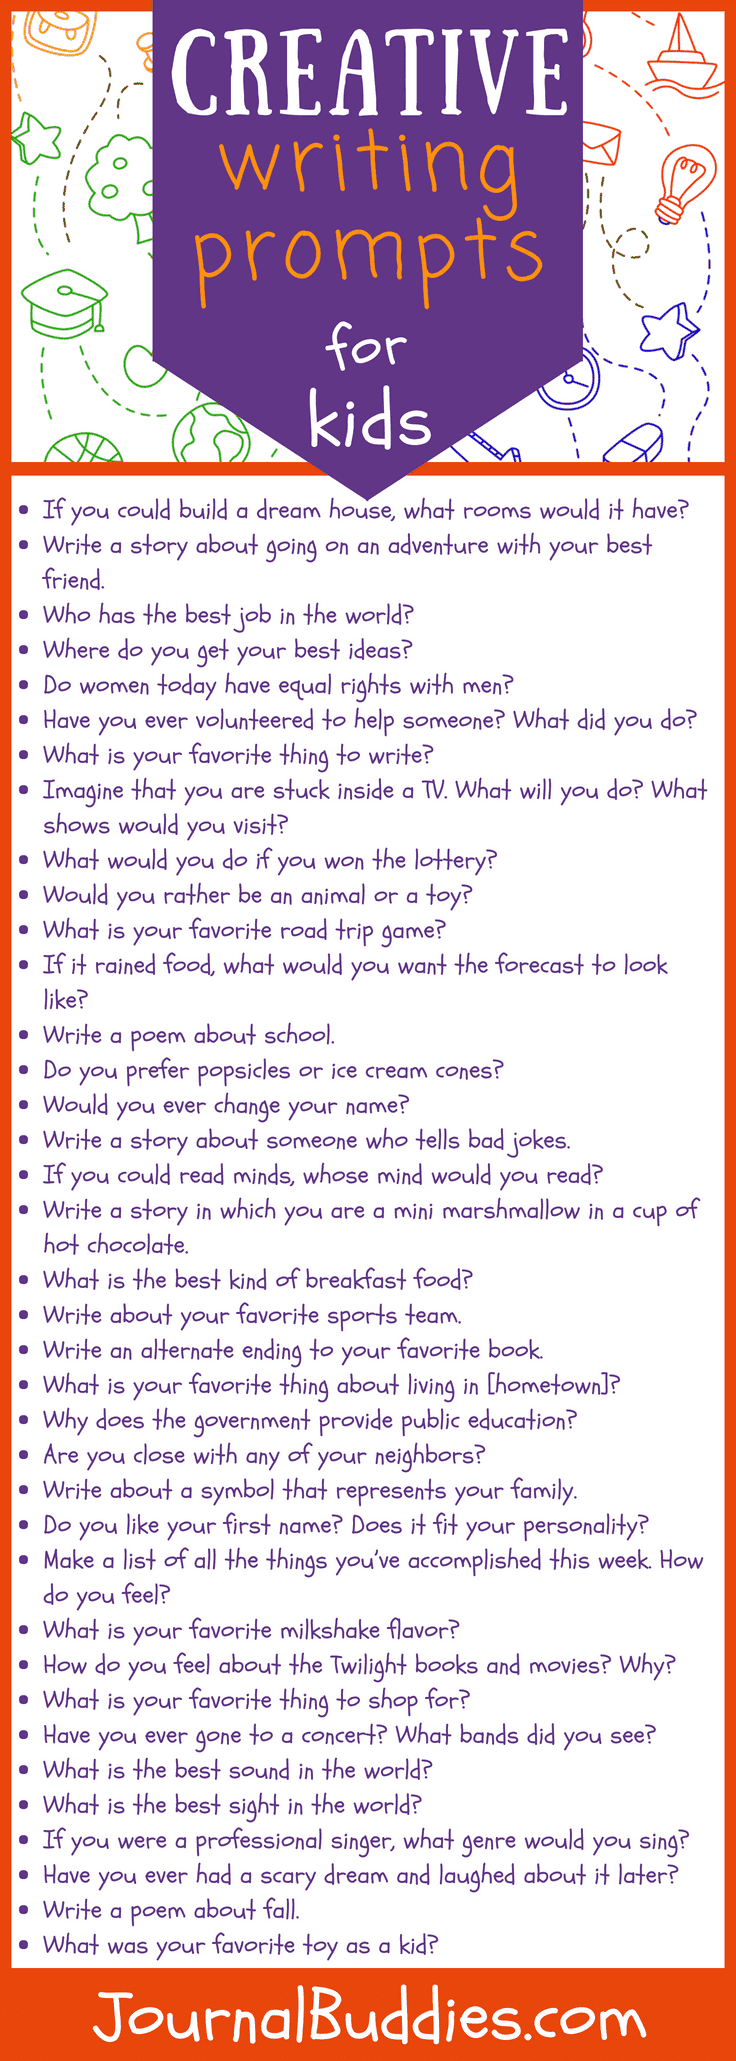 Writing prompts are a great way to get kids' minds going, as a question or idea can inspire all kinds of imaginative reflections and creative solutions.